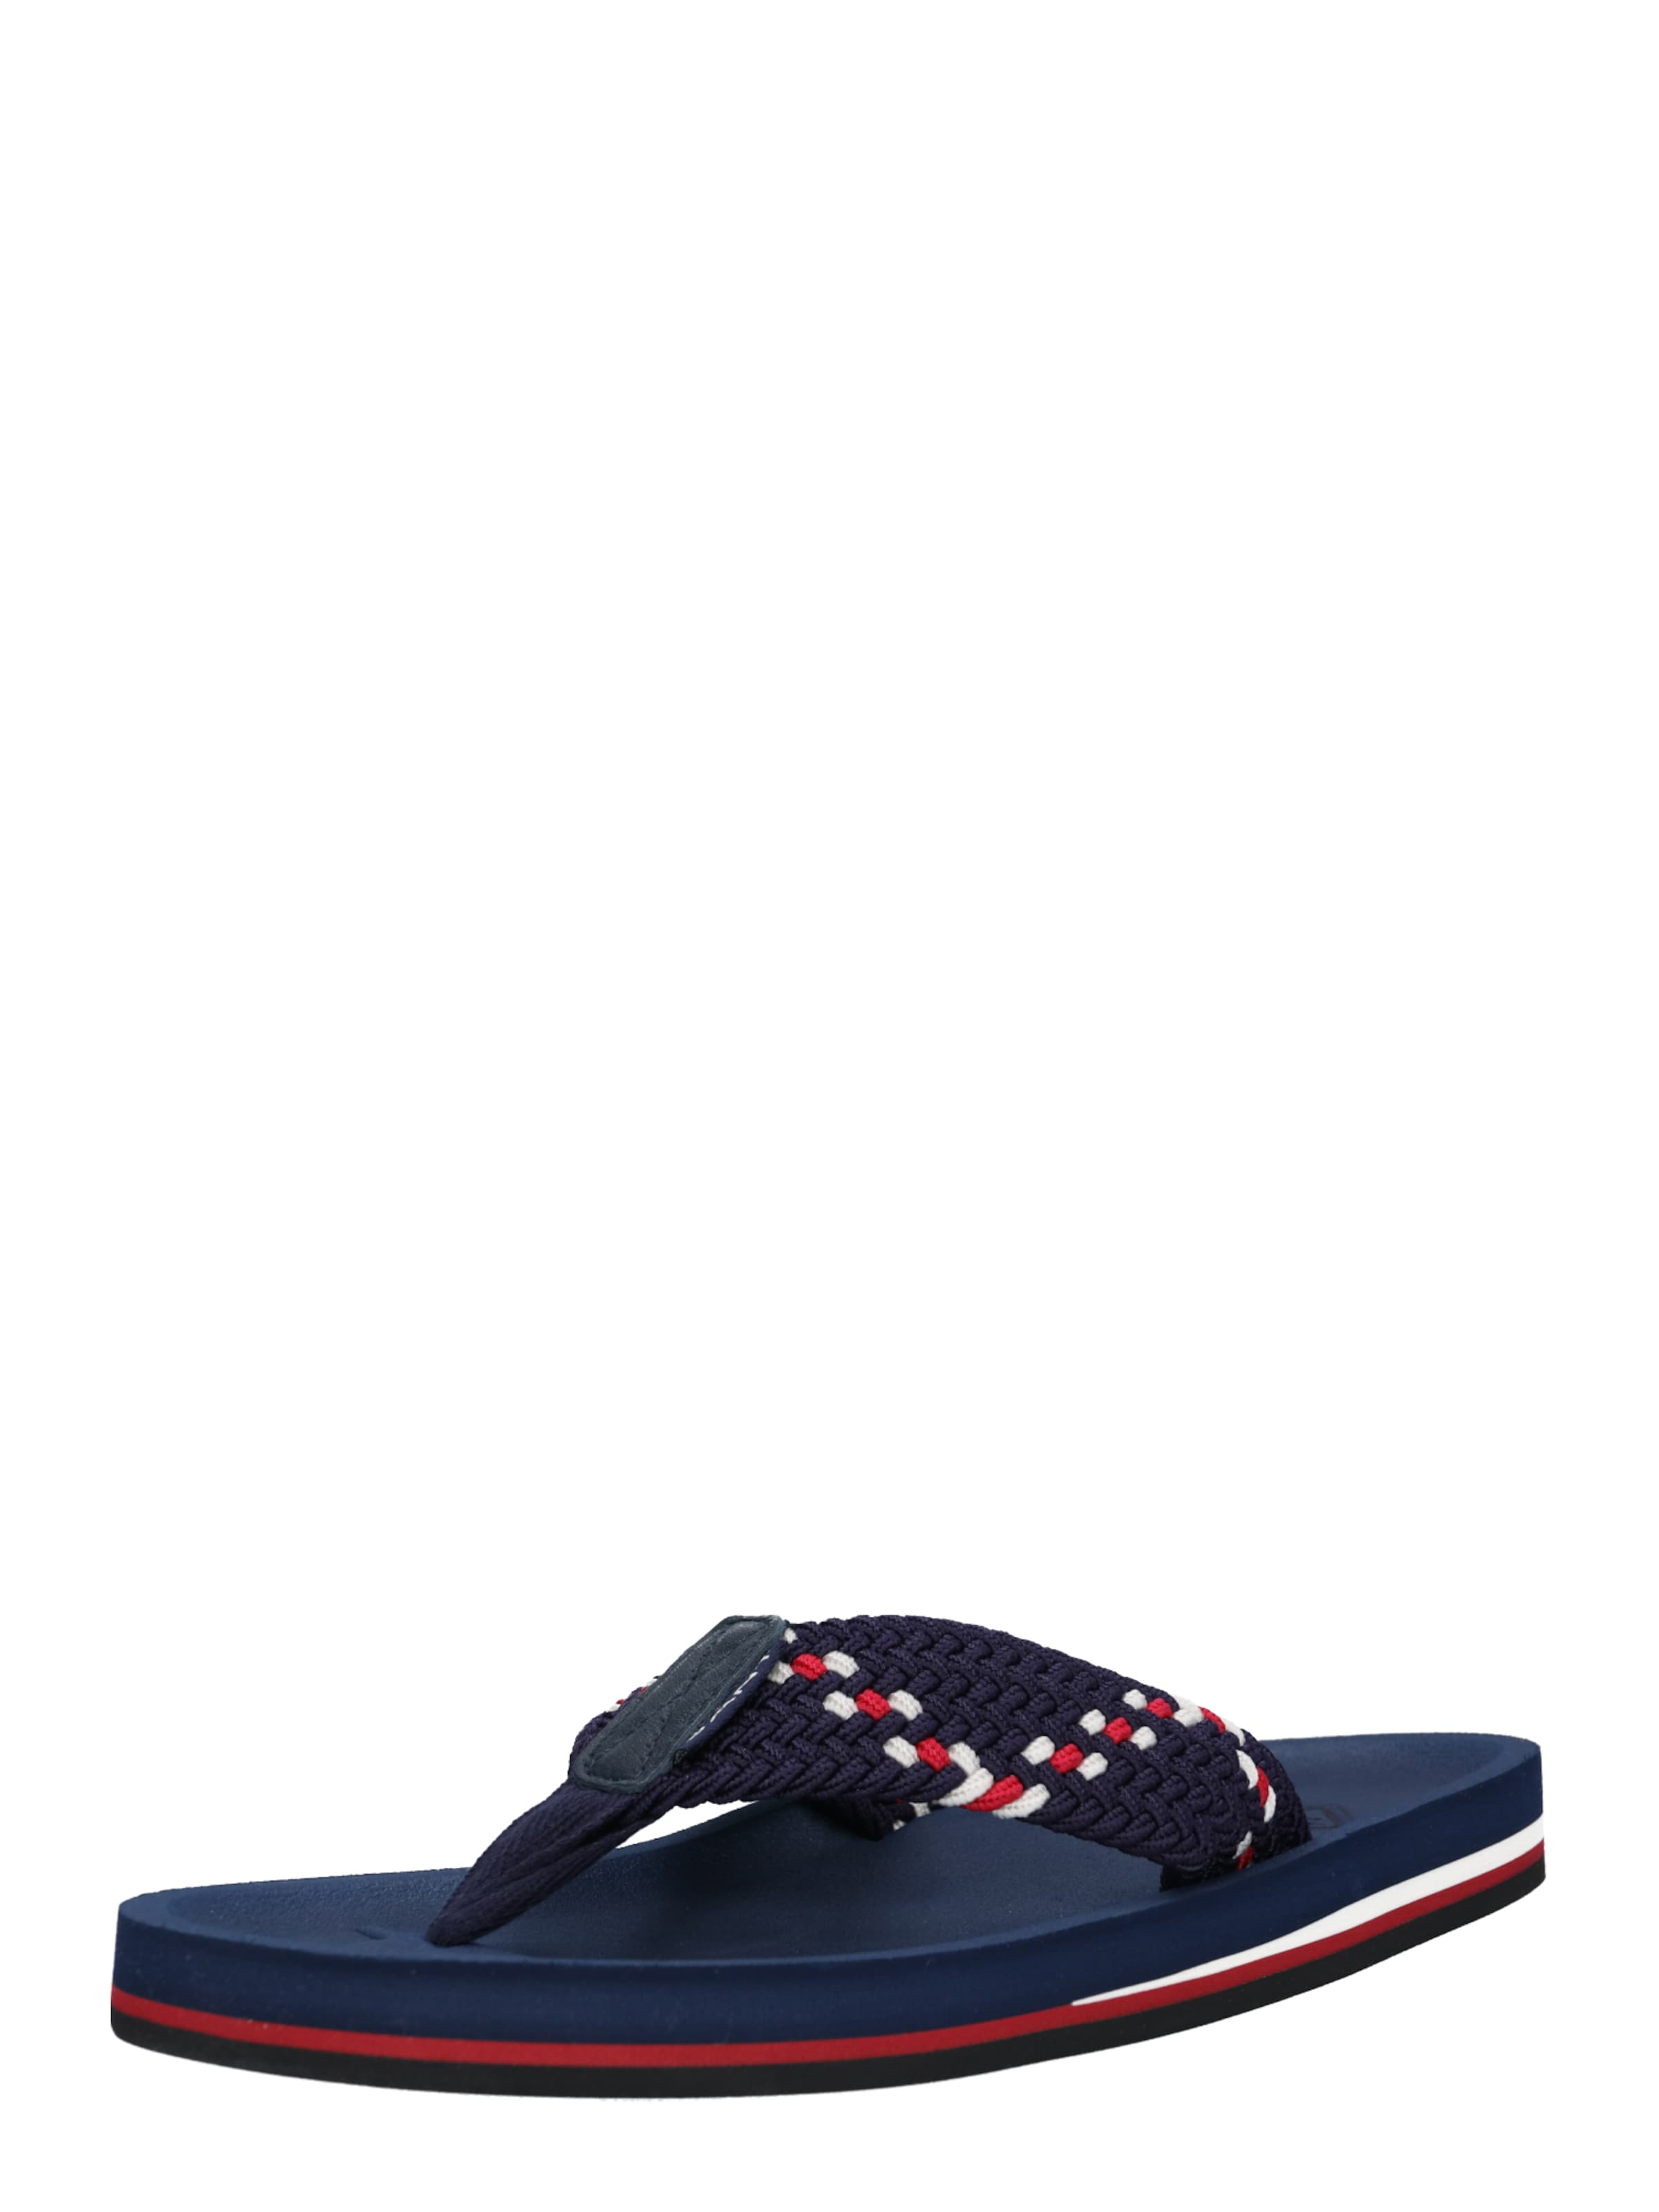 In Weiß 'breeze' Slipper DunkelblauRot Gant c5Lq34ARj